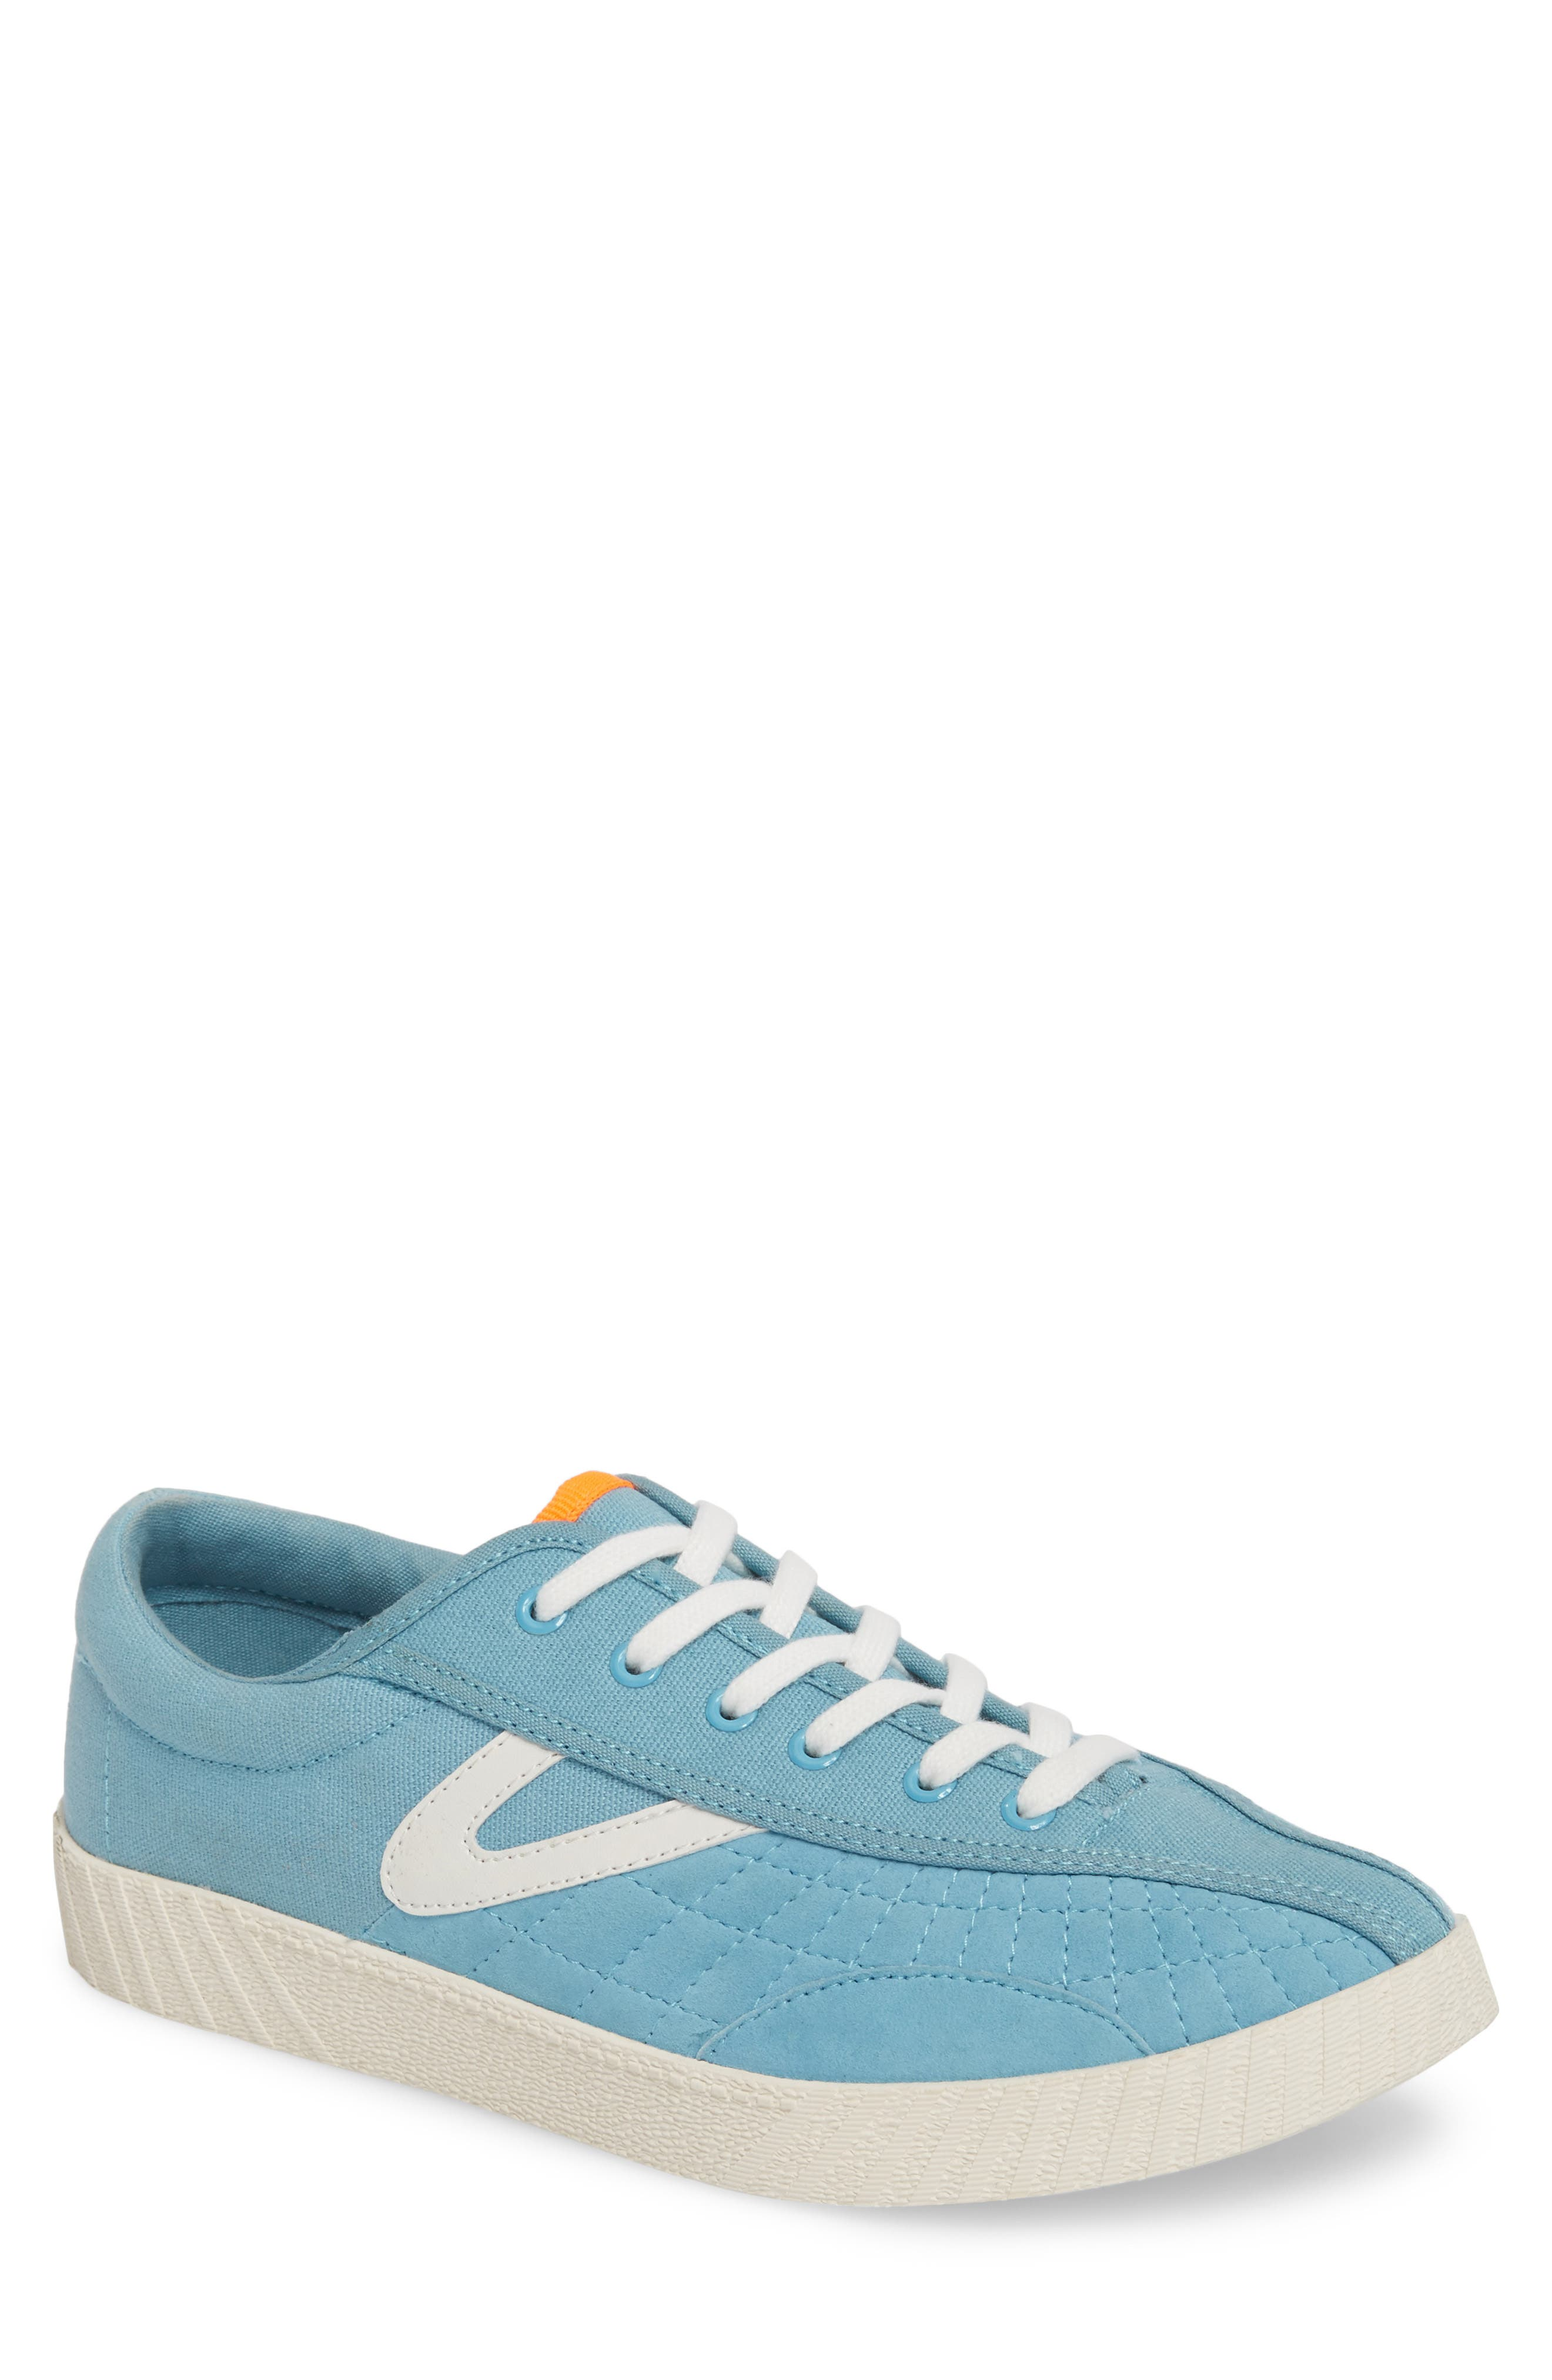 Andre 3000 Nylite Low Top Sneaker,                             Main thumbnail 1, color,                             Baby Blue Canvas